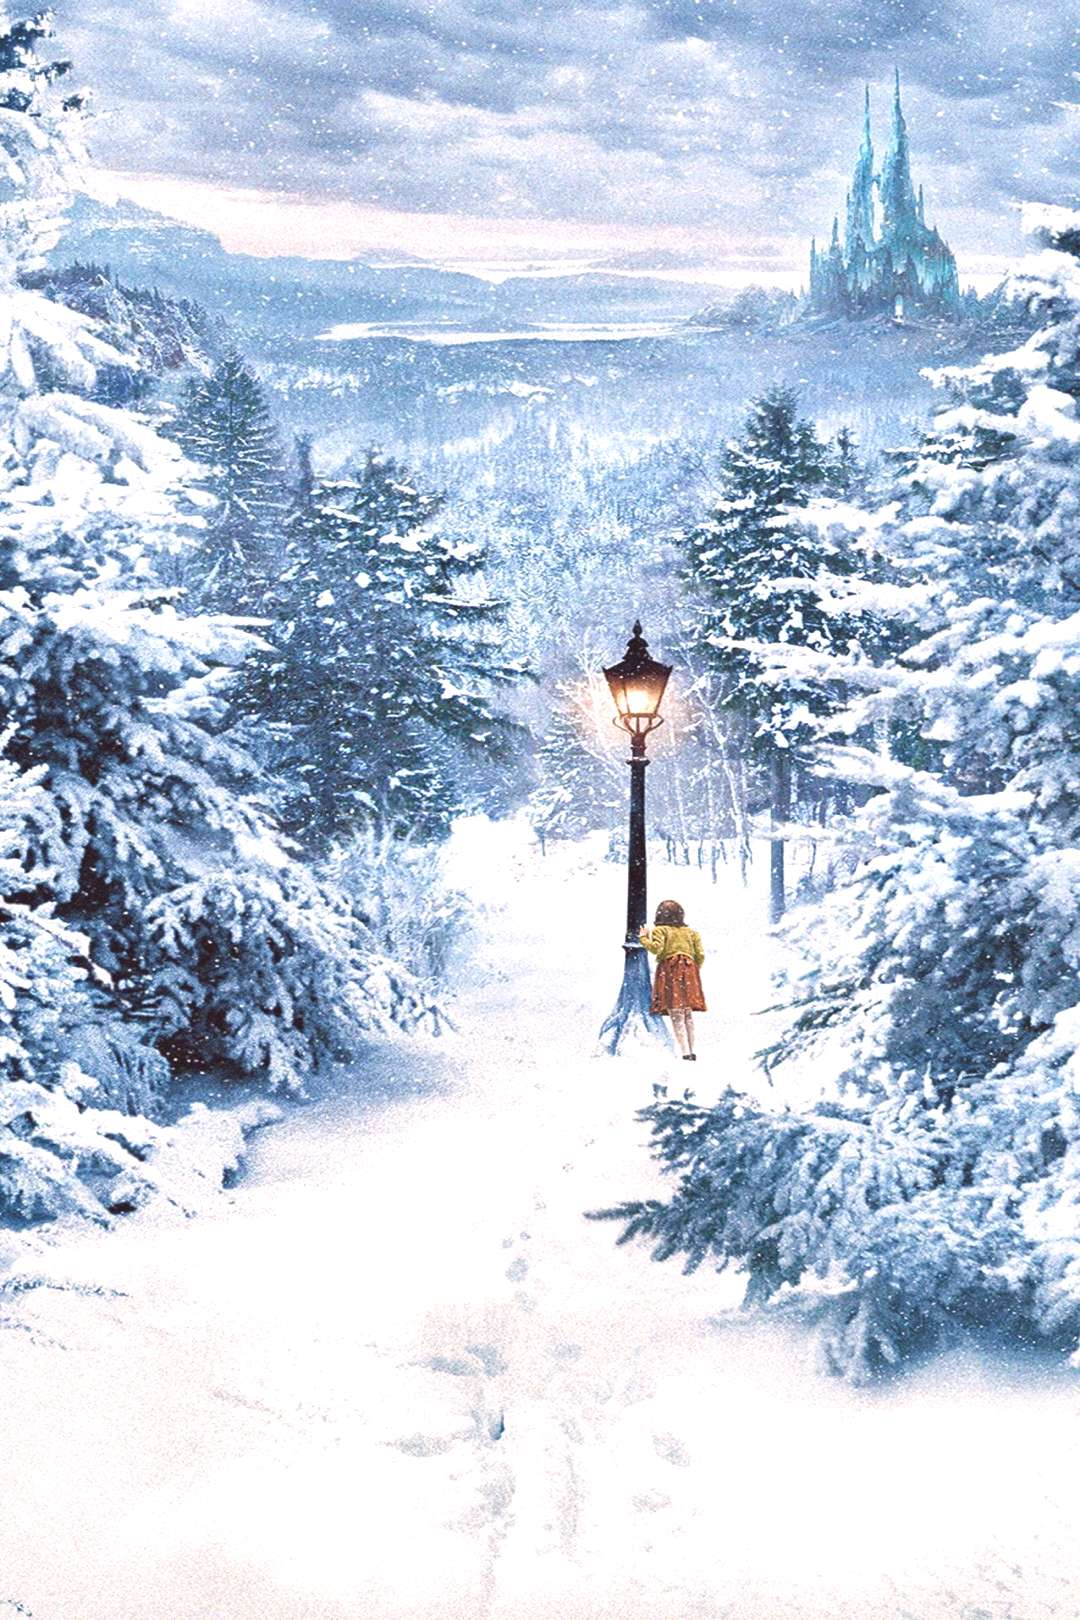 Wallpaper for quotThe Chronicles of Narnia The Lion, the Witch and the Wardrobequot (2005)